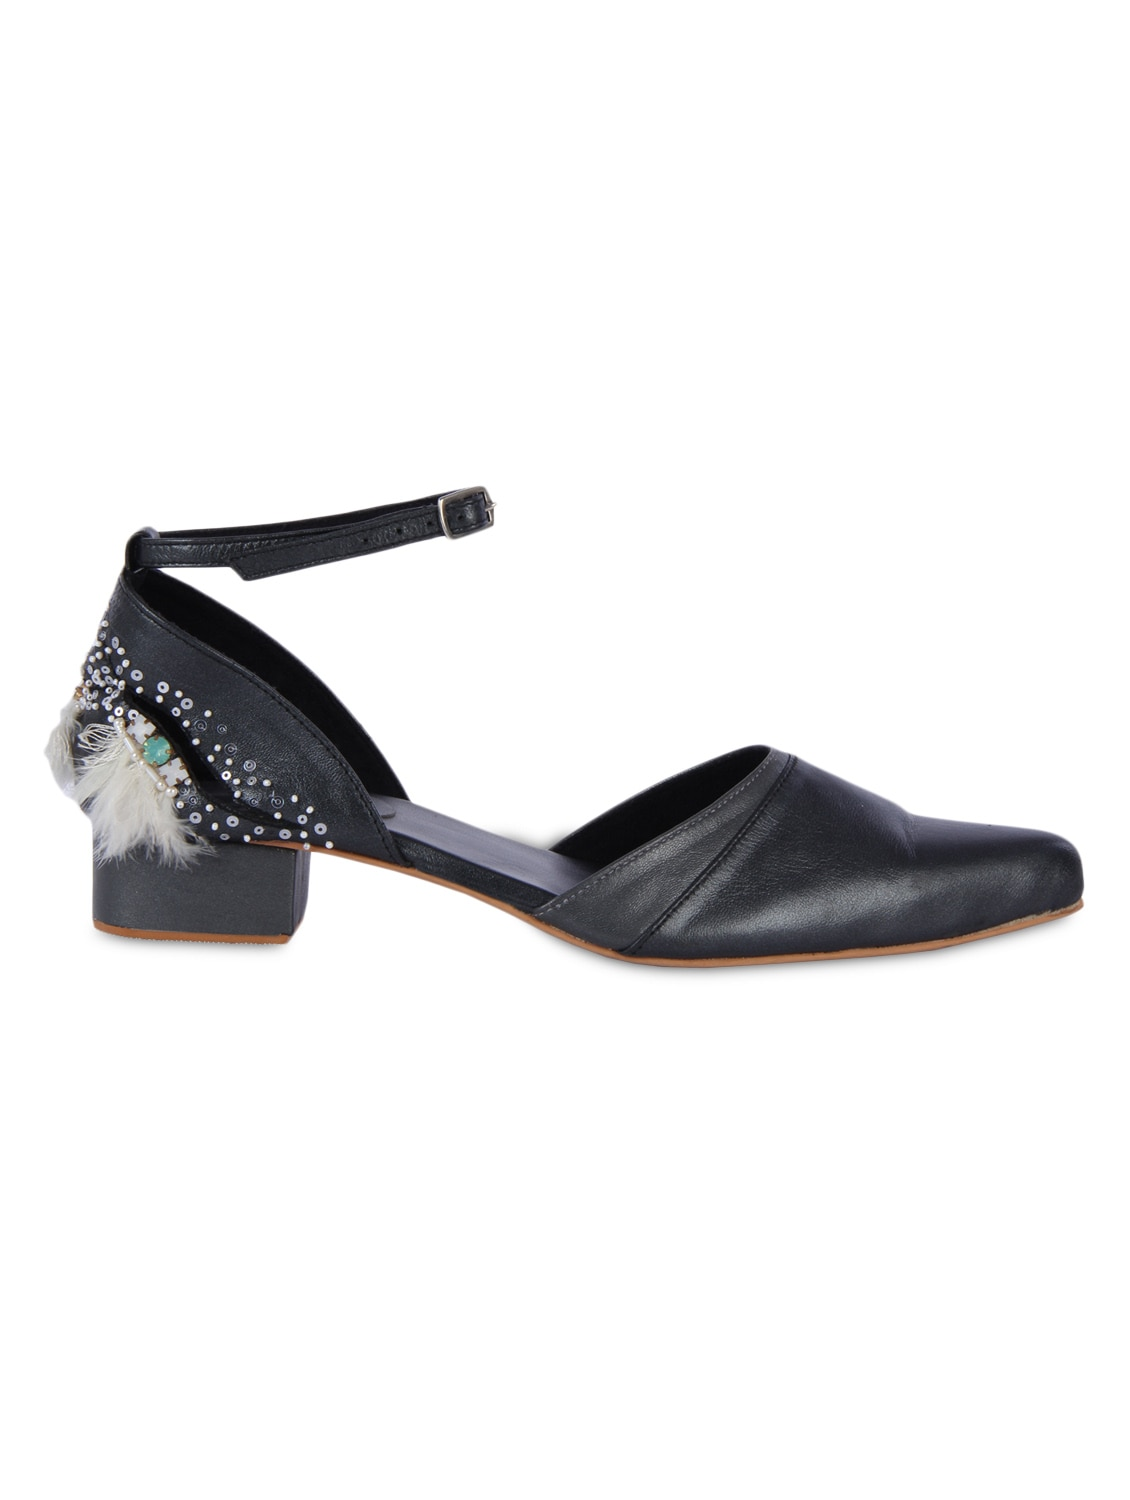 Black Sequined Leather Heels With Buckle Closure - By